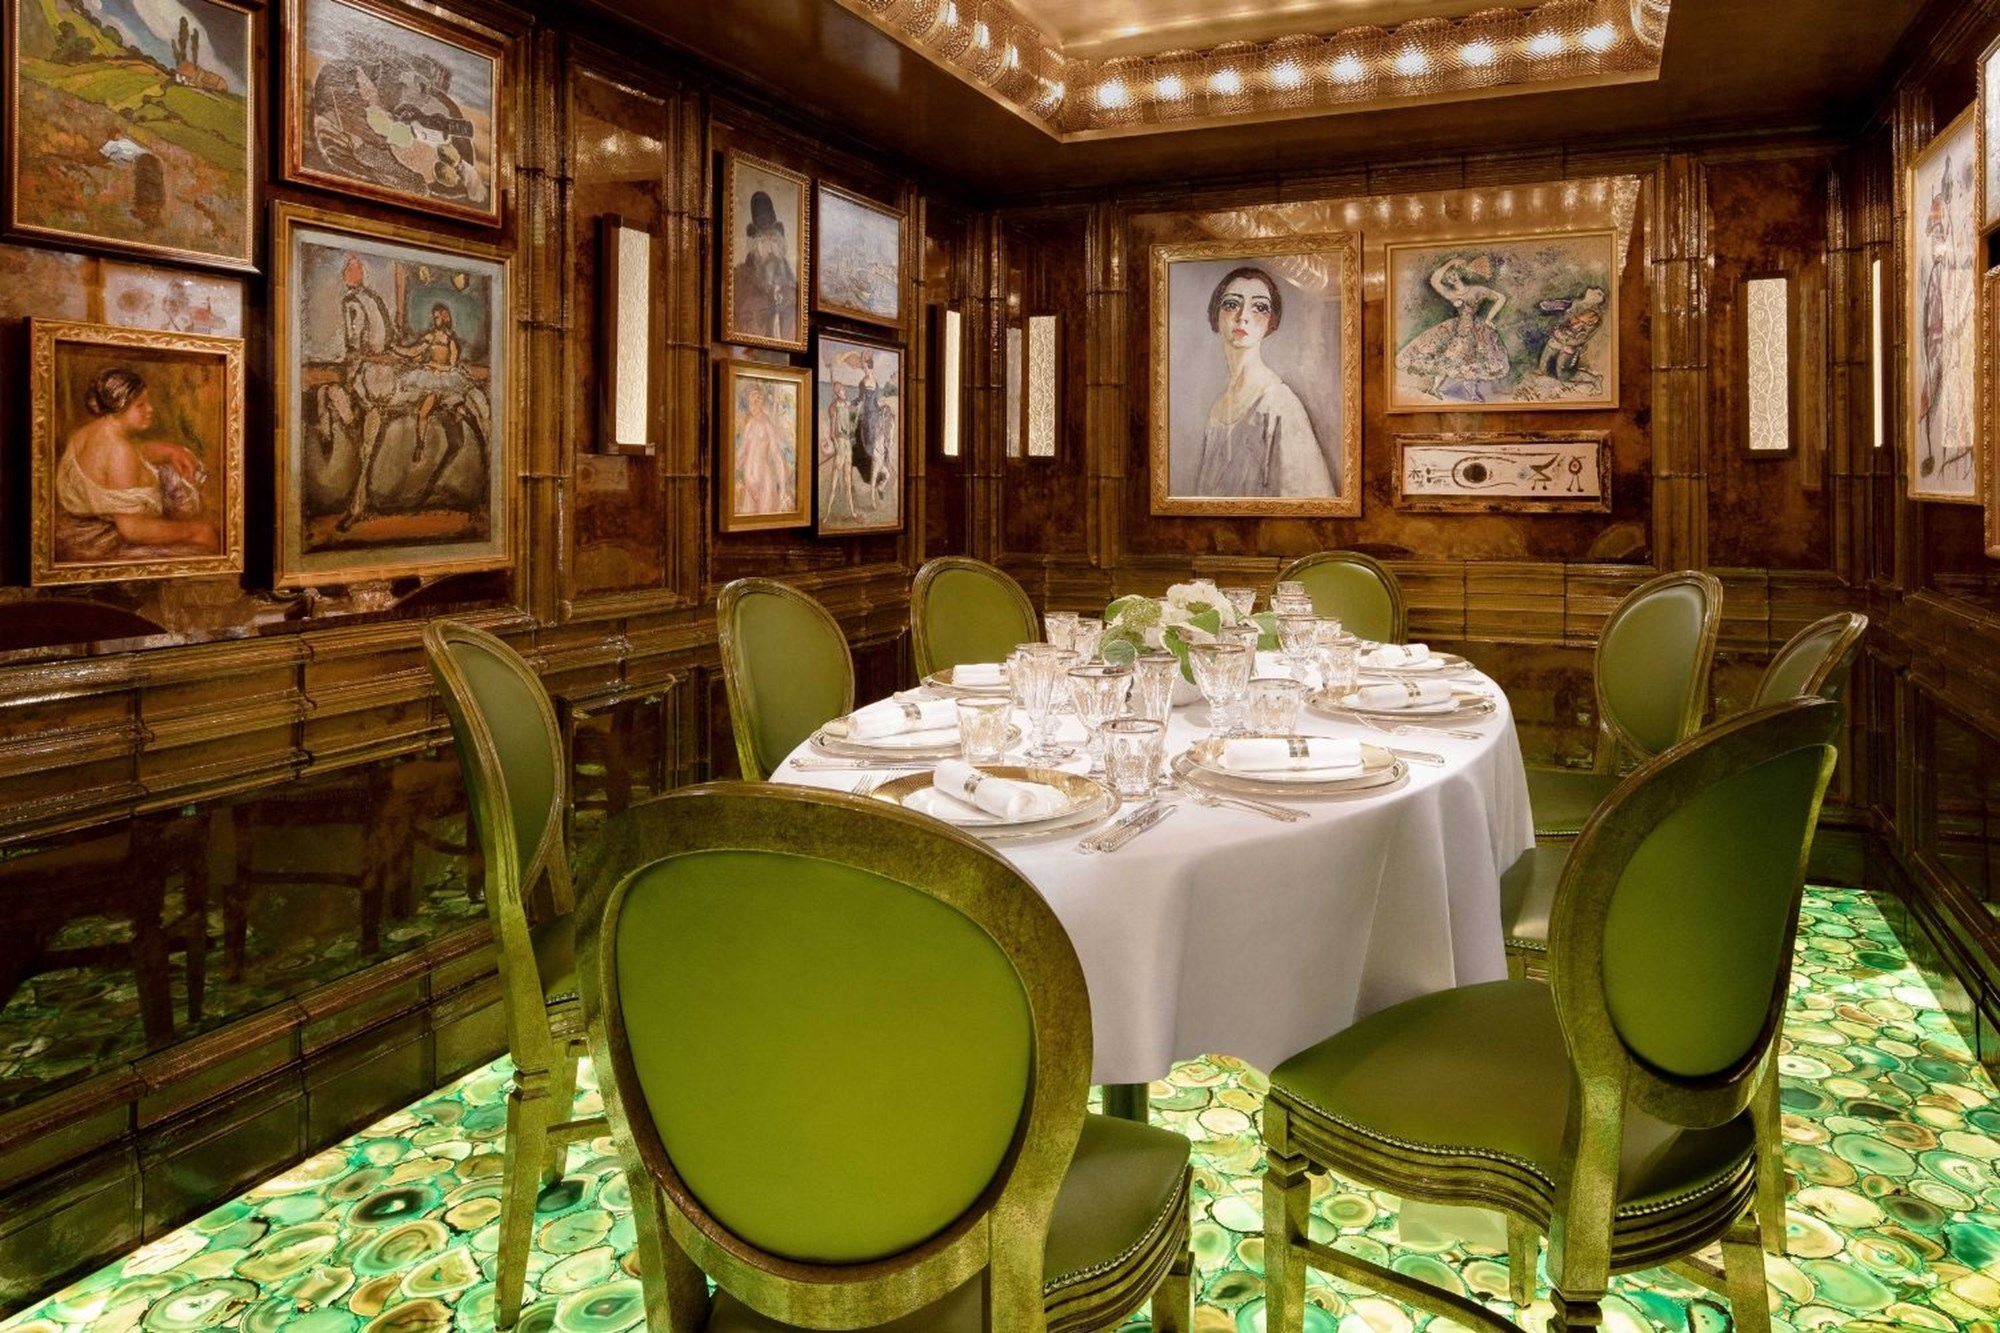 The group dining space at Scott's, a restaurant in Mayfair